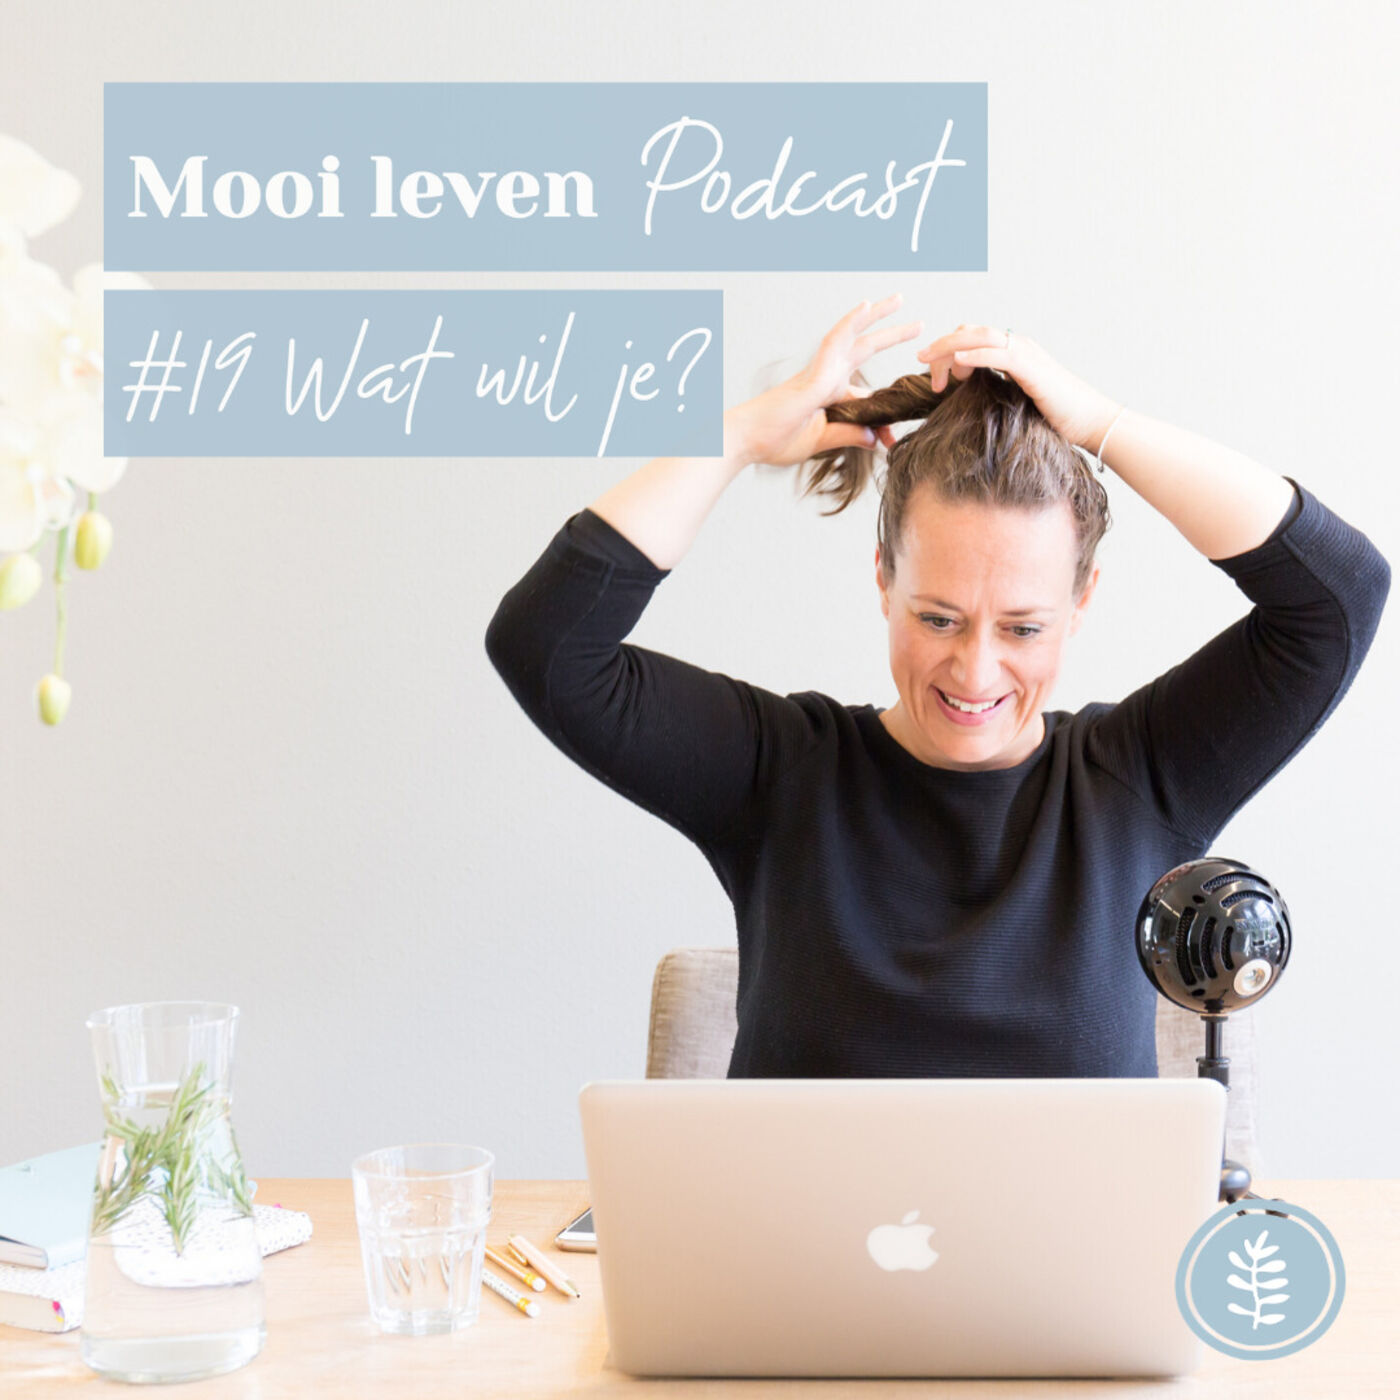 Mooi Leven Podcast #19 | Wat wil je?